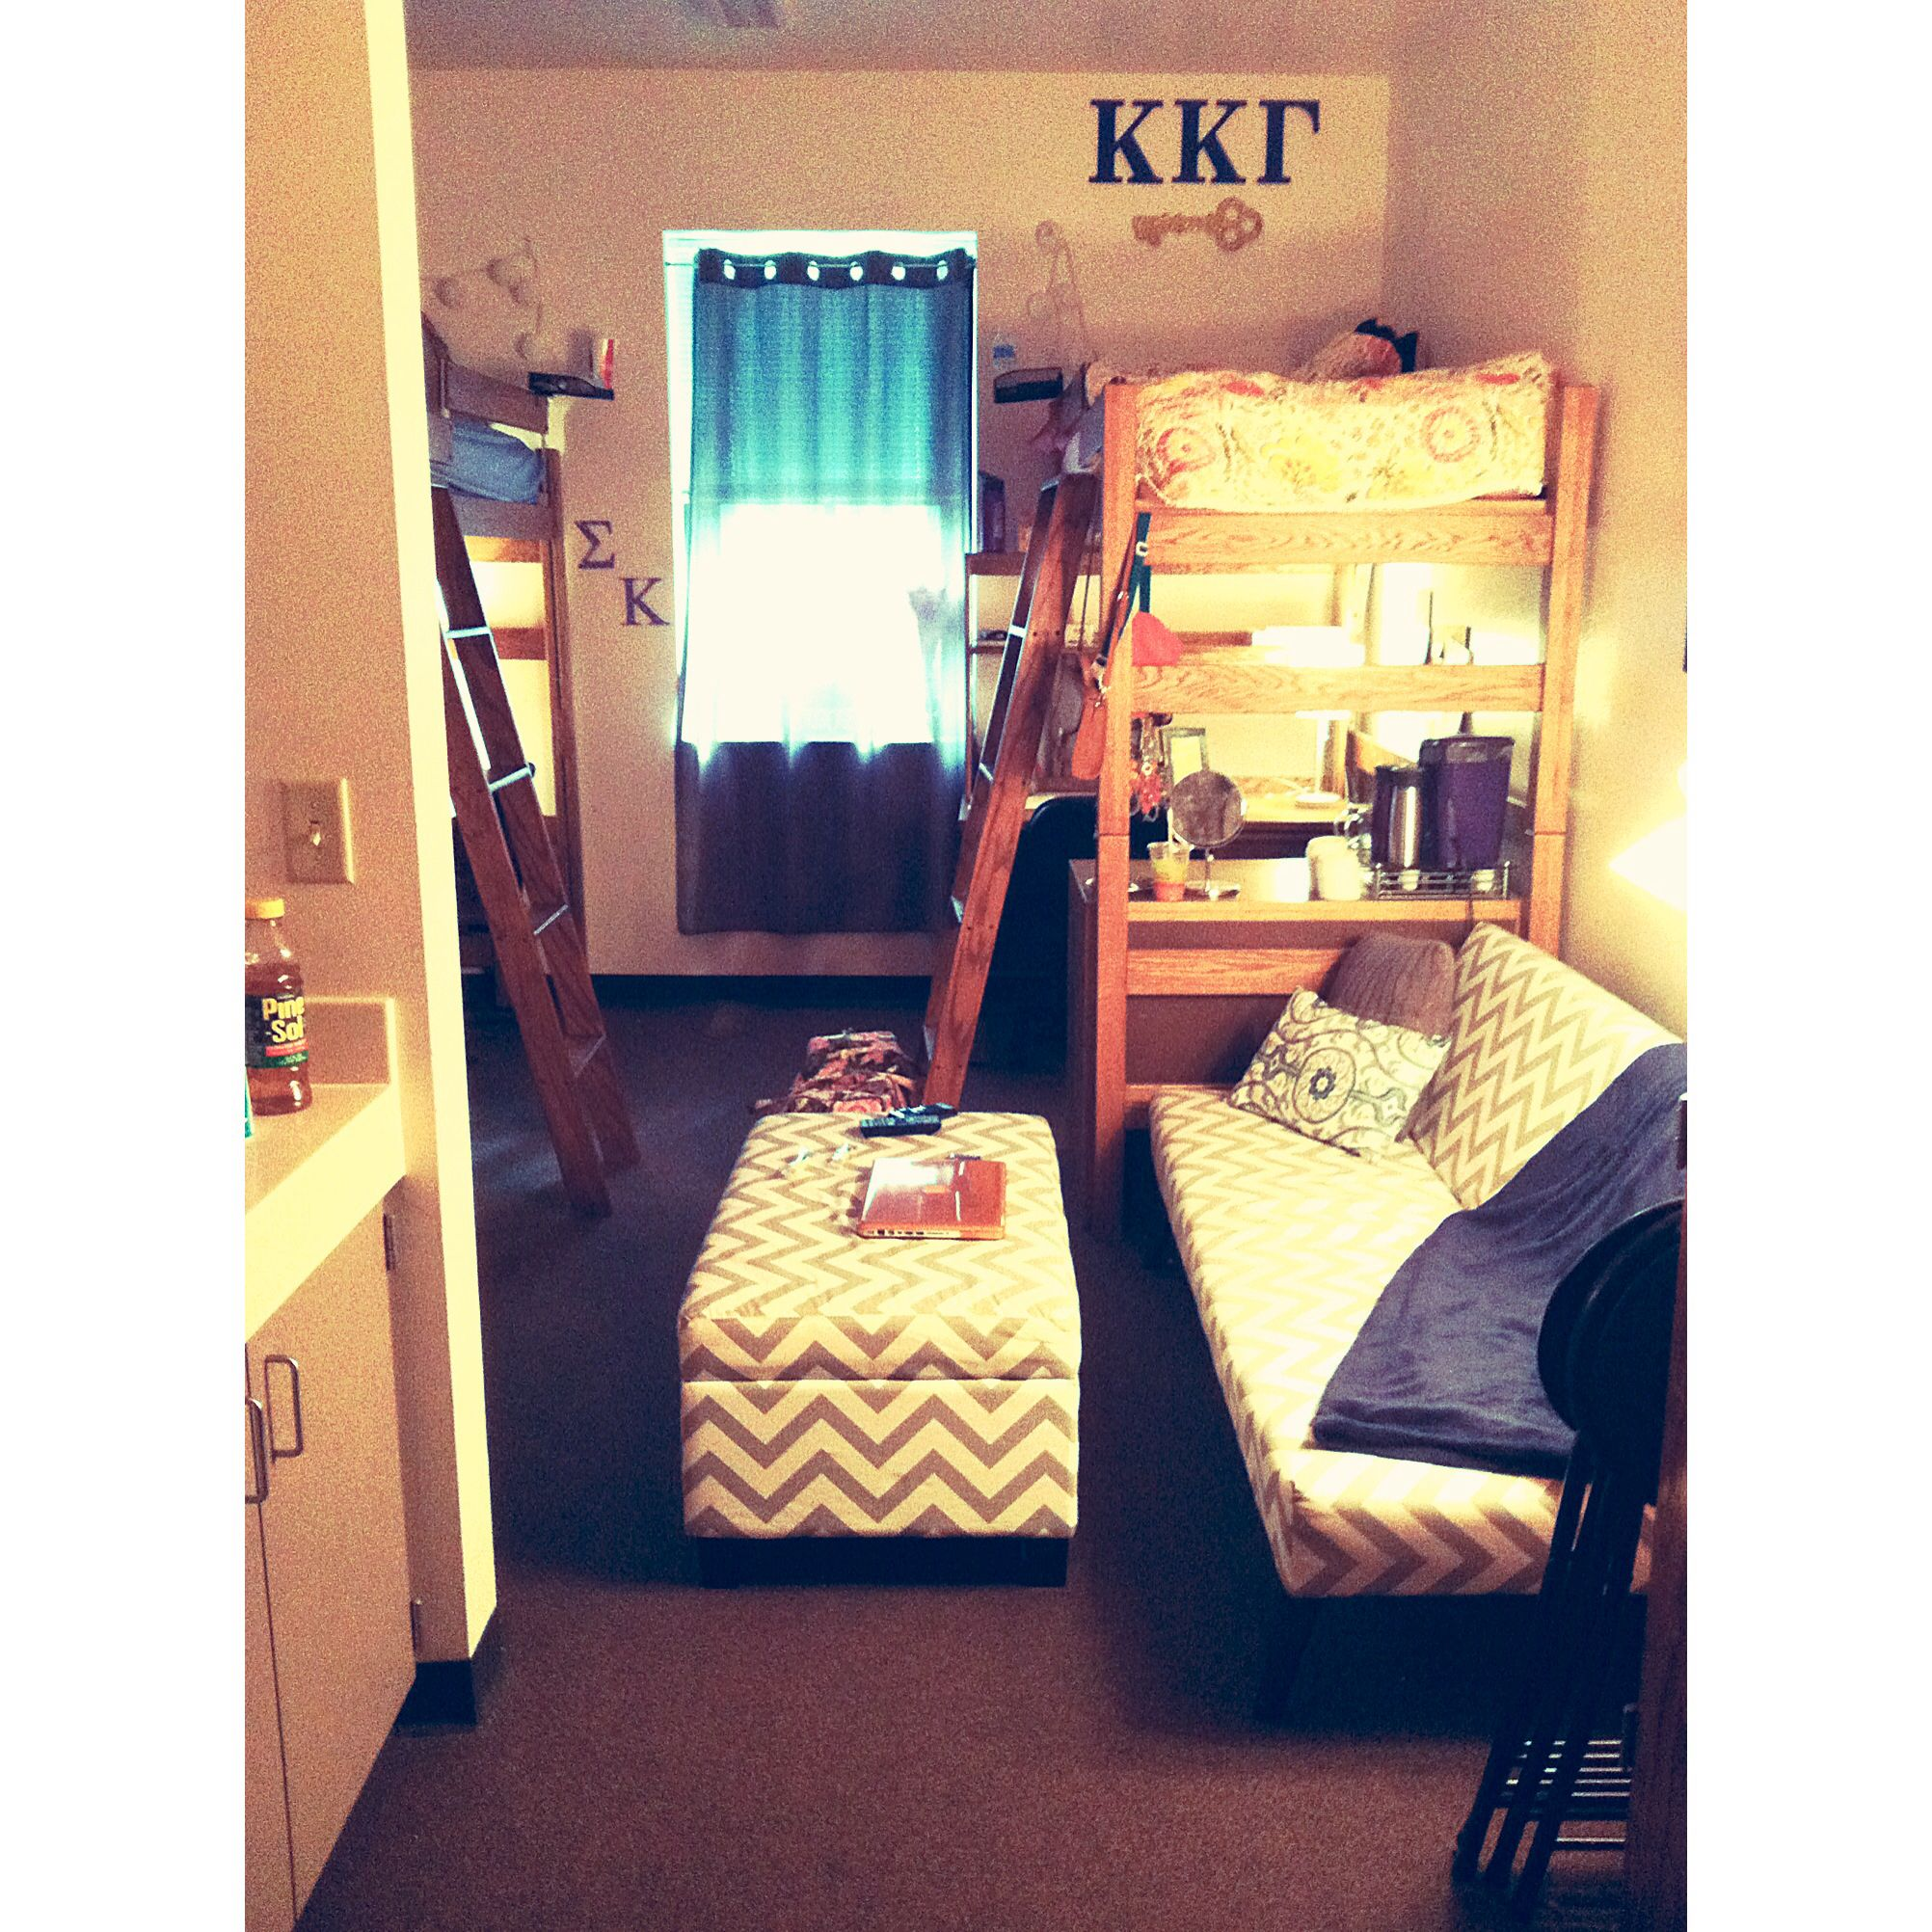 Dorm Room Life This Set Up Could Totally Work In An